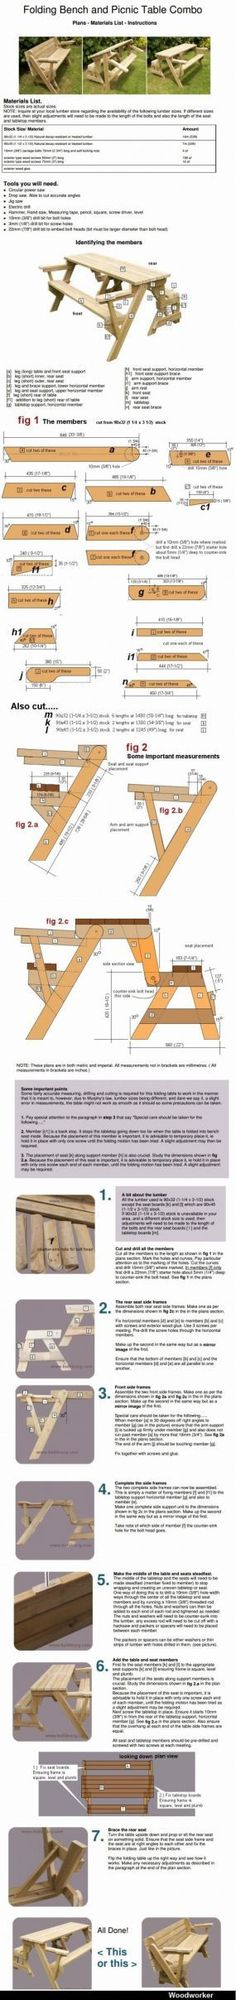 Folding Bench and Picnic Table Combo. Complete plans. Wooden chair plan - CLICK TO ENLARGE: